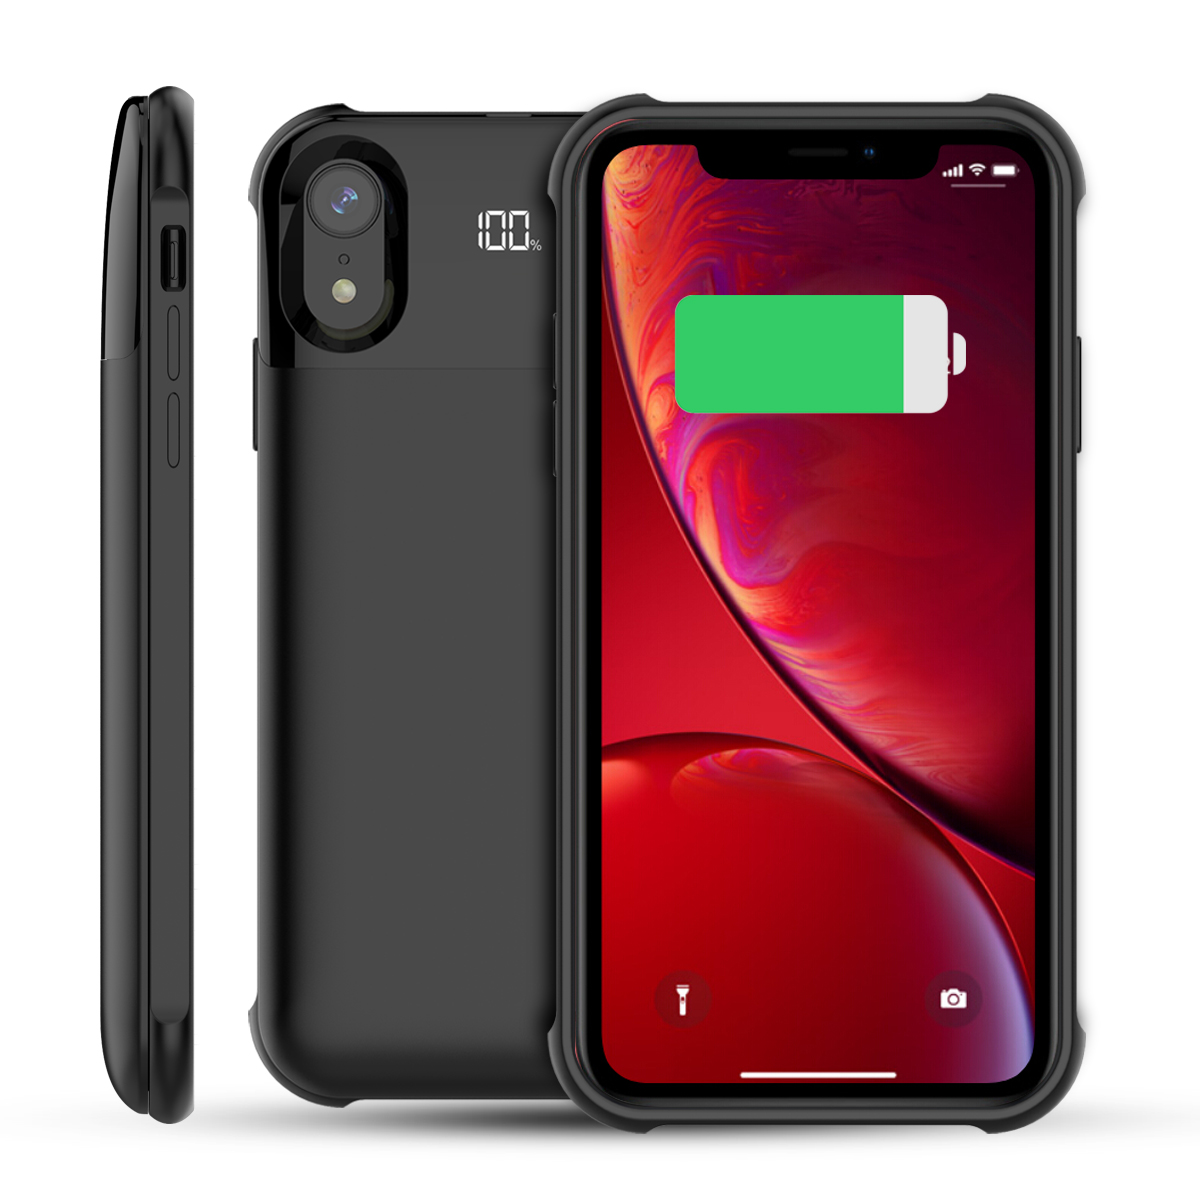 CASEWIN Battery Charger Case For iPhone X XS Power Bank Case 5000mAh External Backup Battery Charging Case With LED Indicator